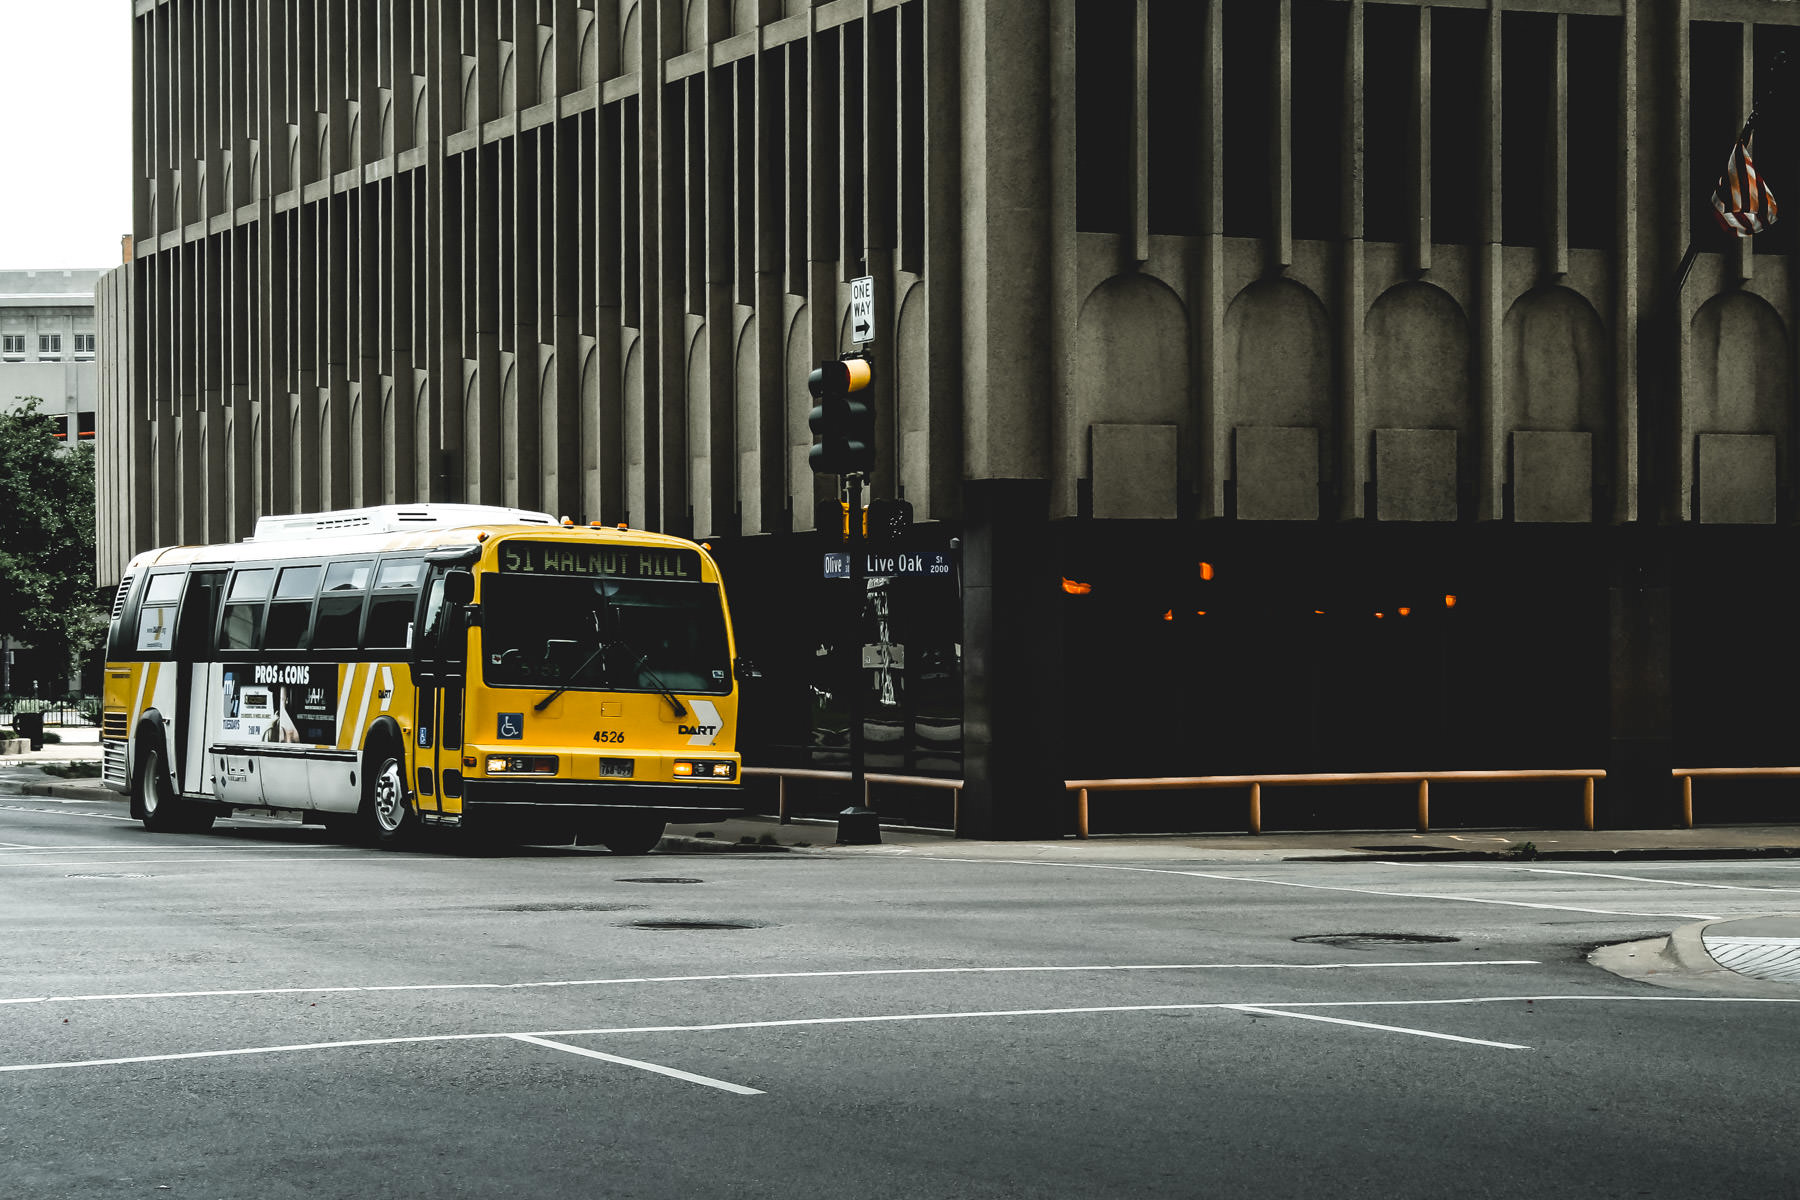 A DART bus spotted in Downtown Dallas, Texas